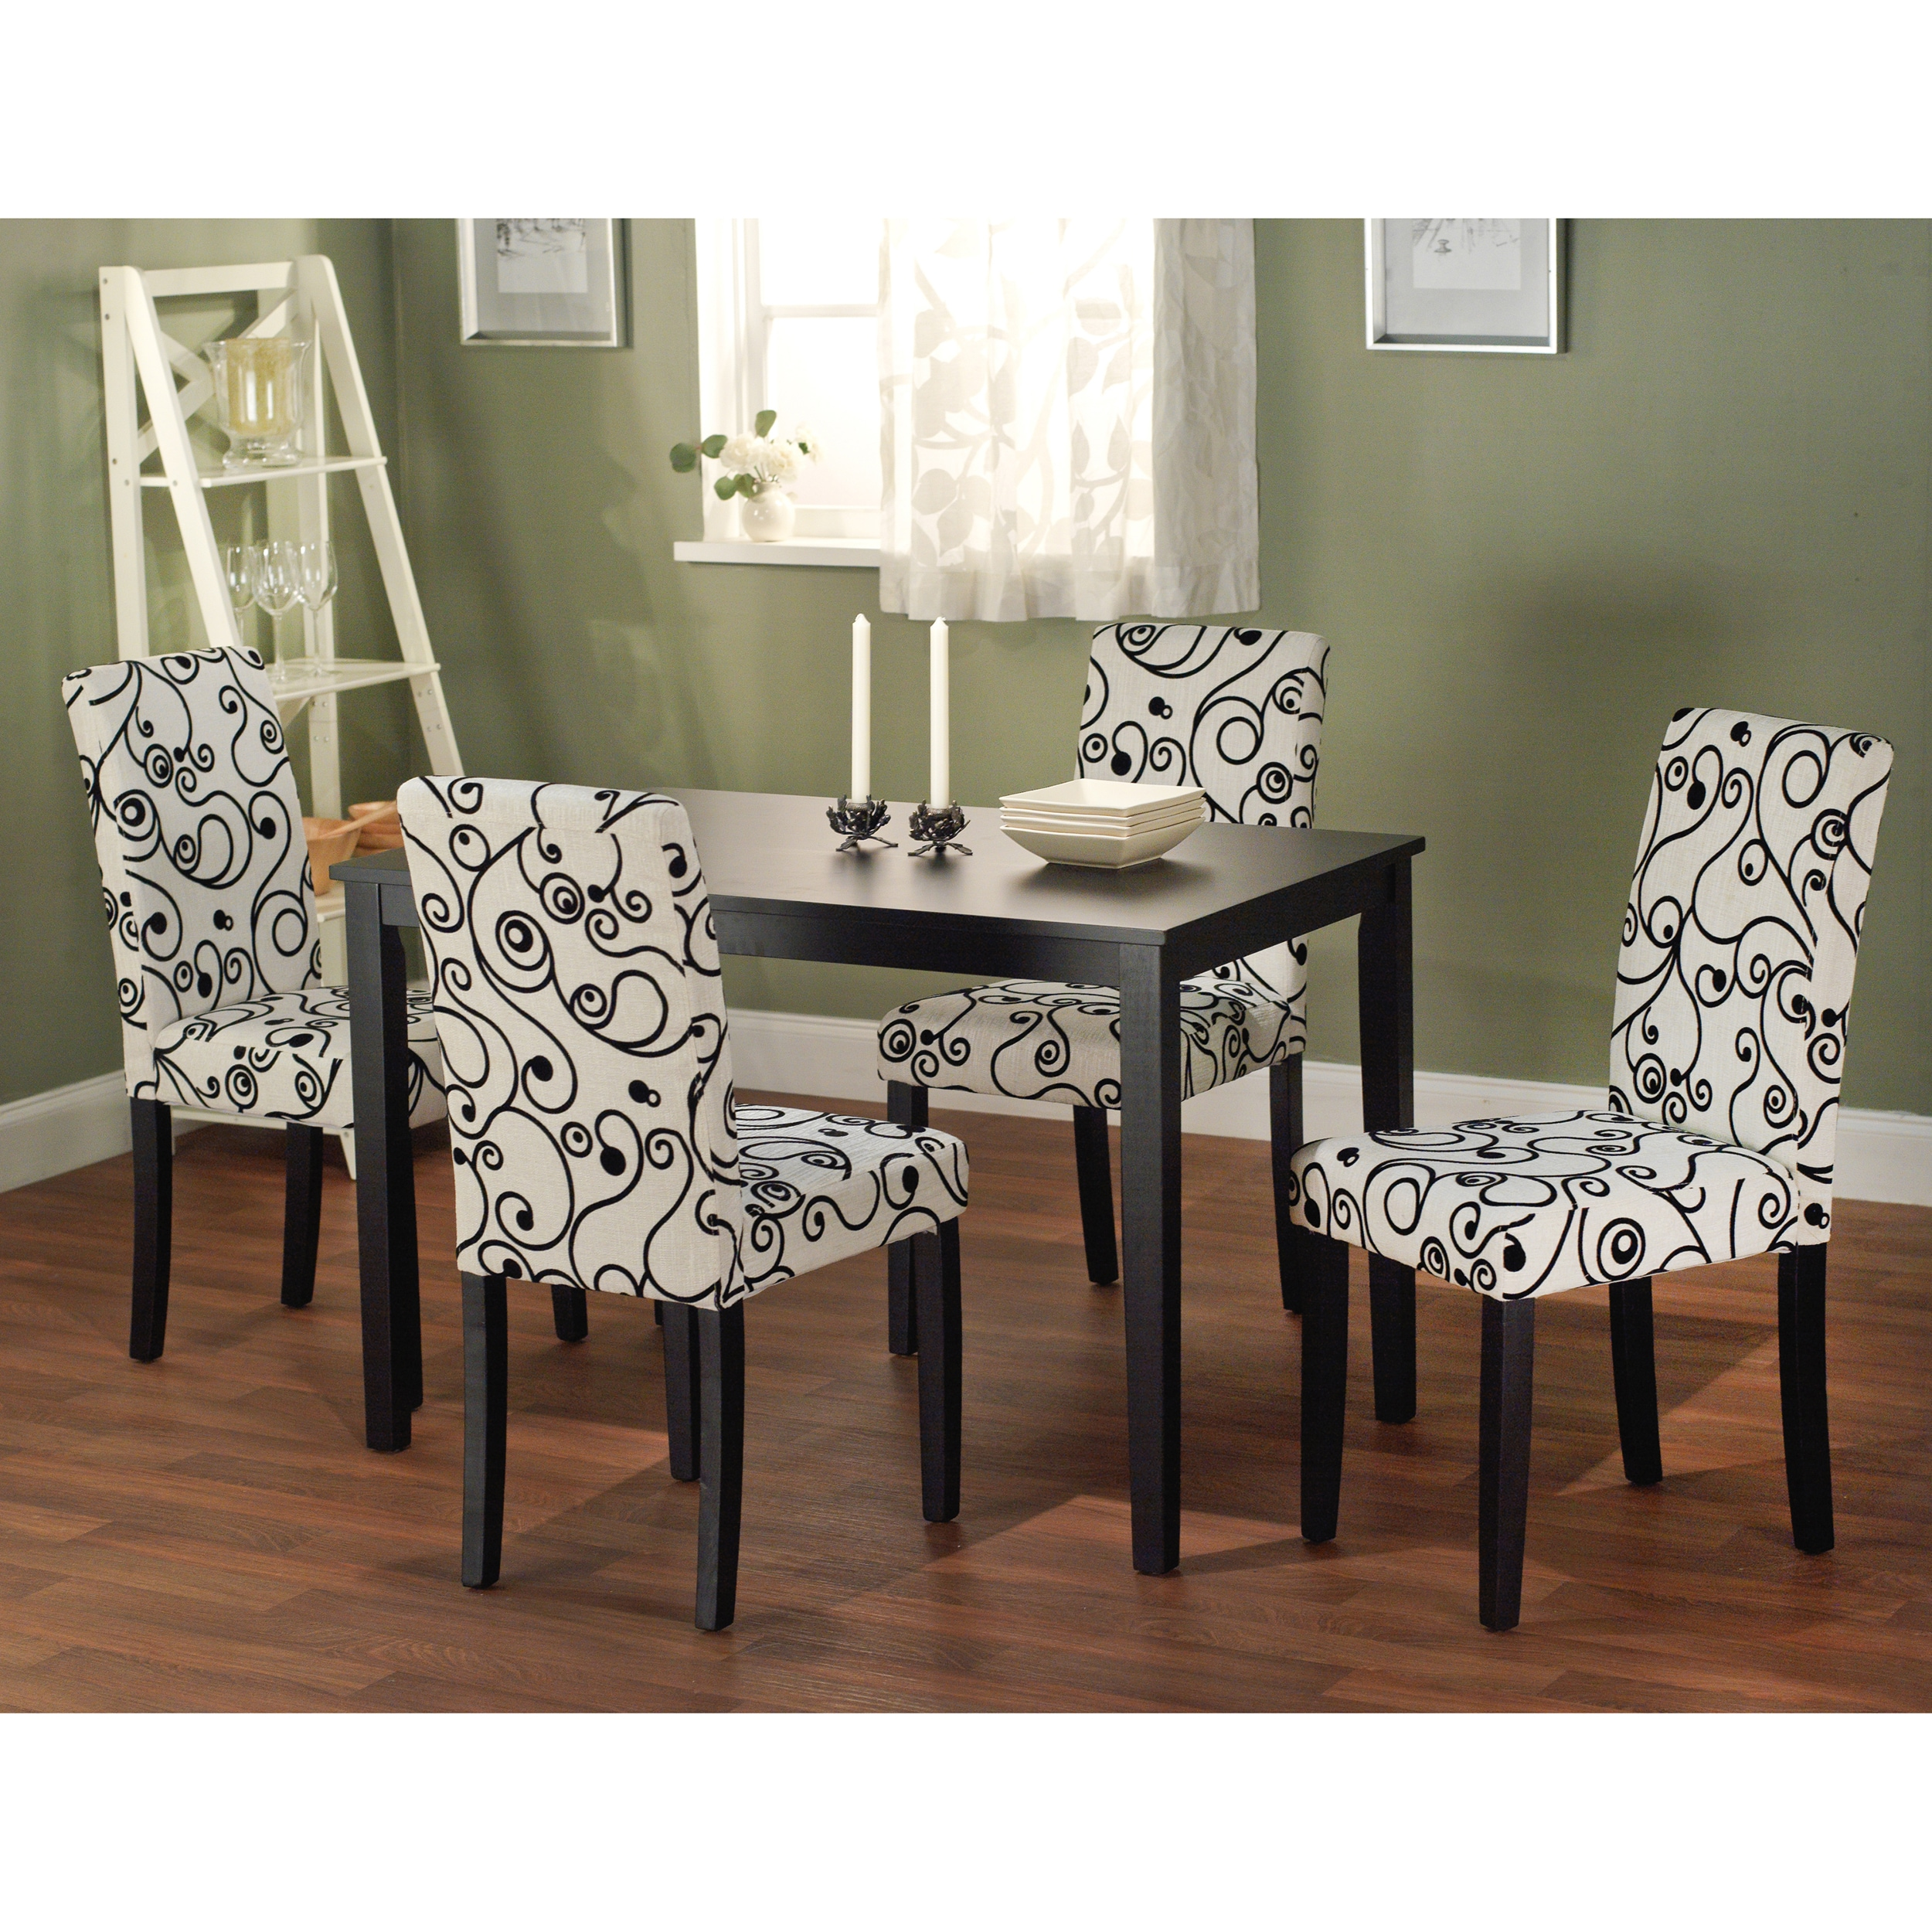 Simple living sophia 5 piece parson dining set for Dining room chair set